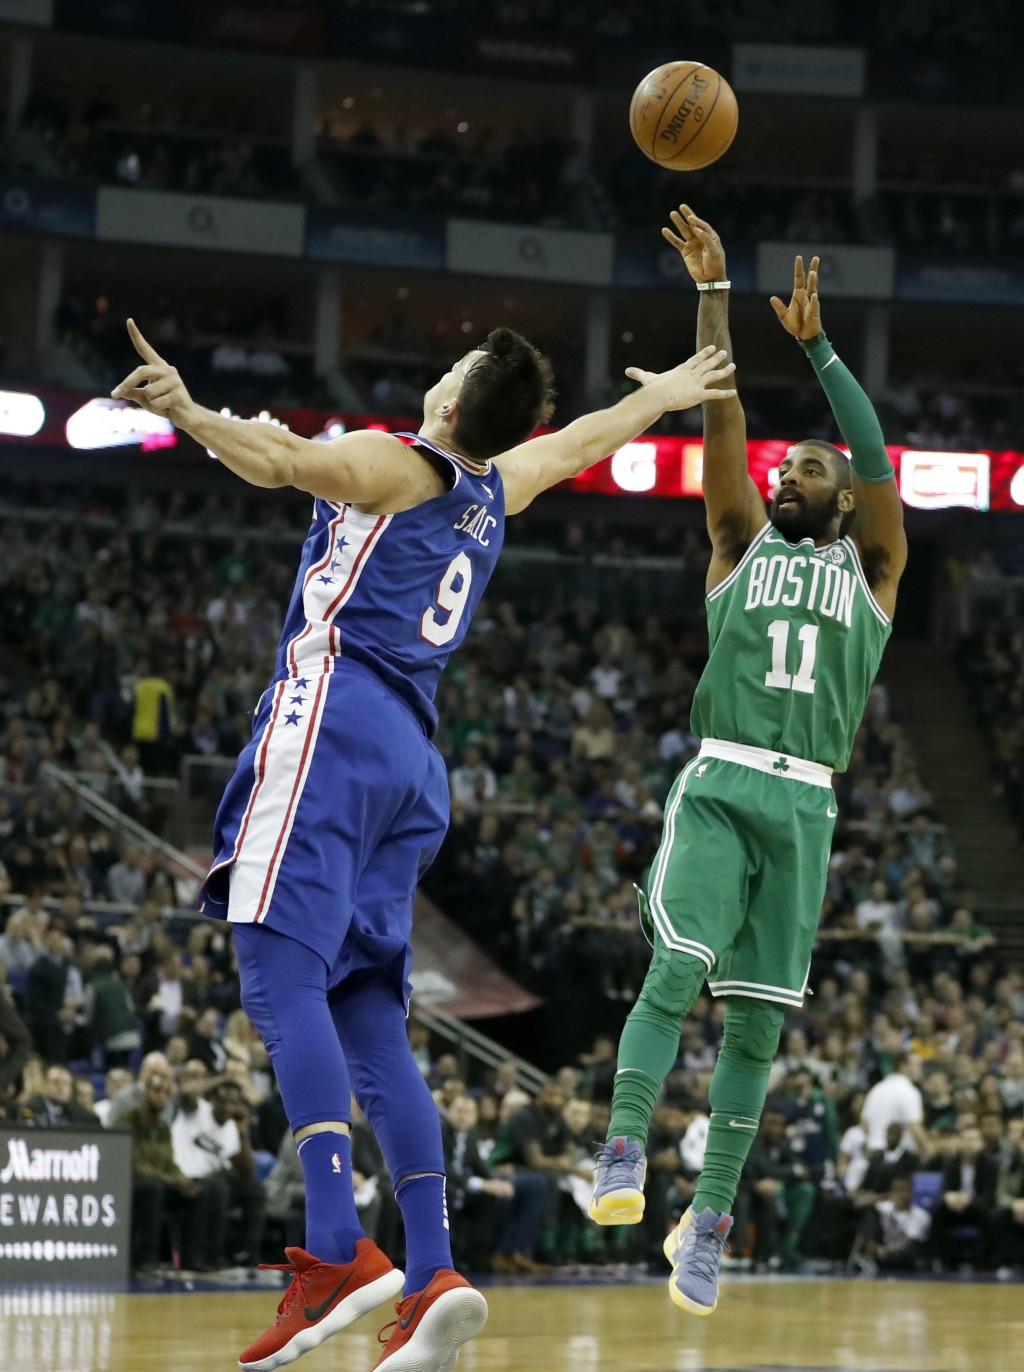 Philadelphia 76ers forward Dario Saric, left, goes up to block Boston Celtics guard Kyrie Irving as he shoots during an NBA basketball game between th